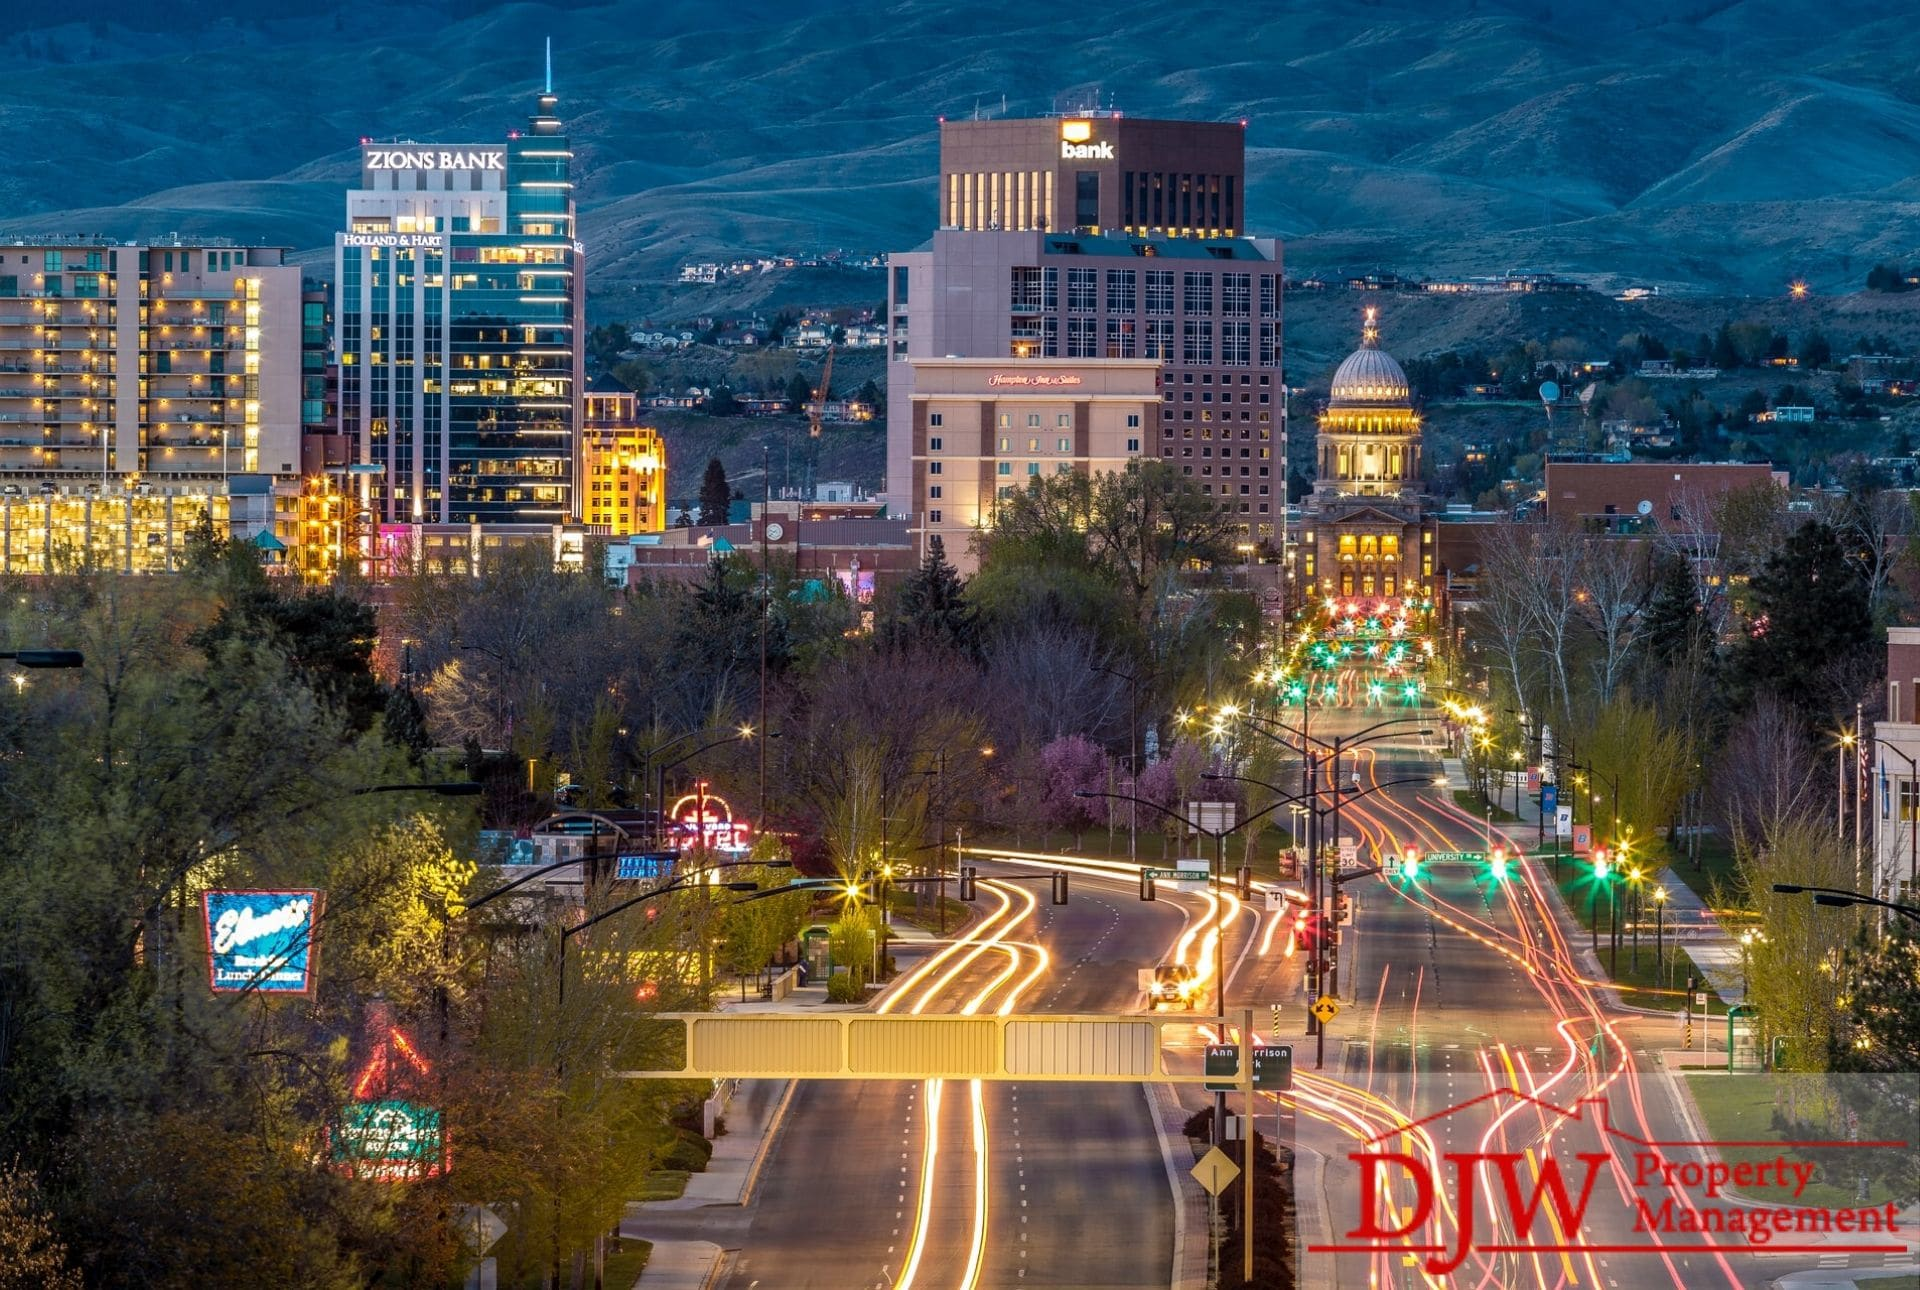 An evening view of downtown Boise, Idaho.